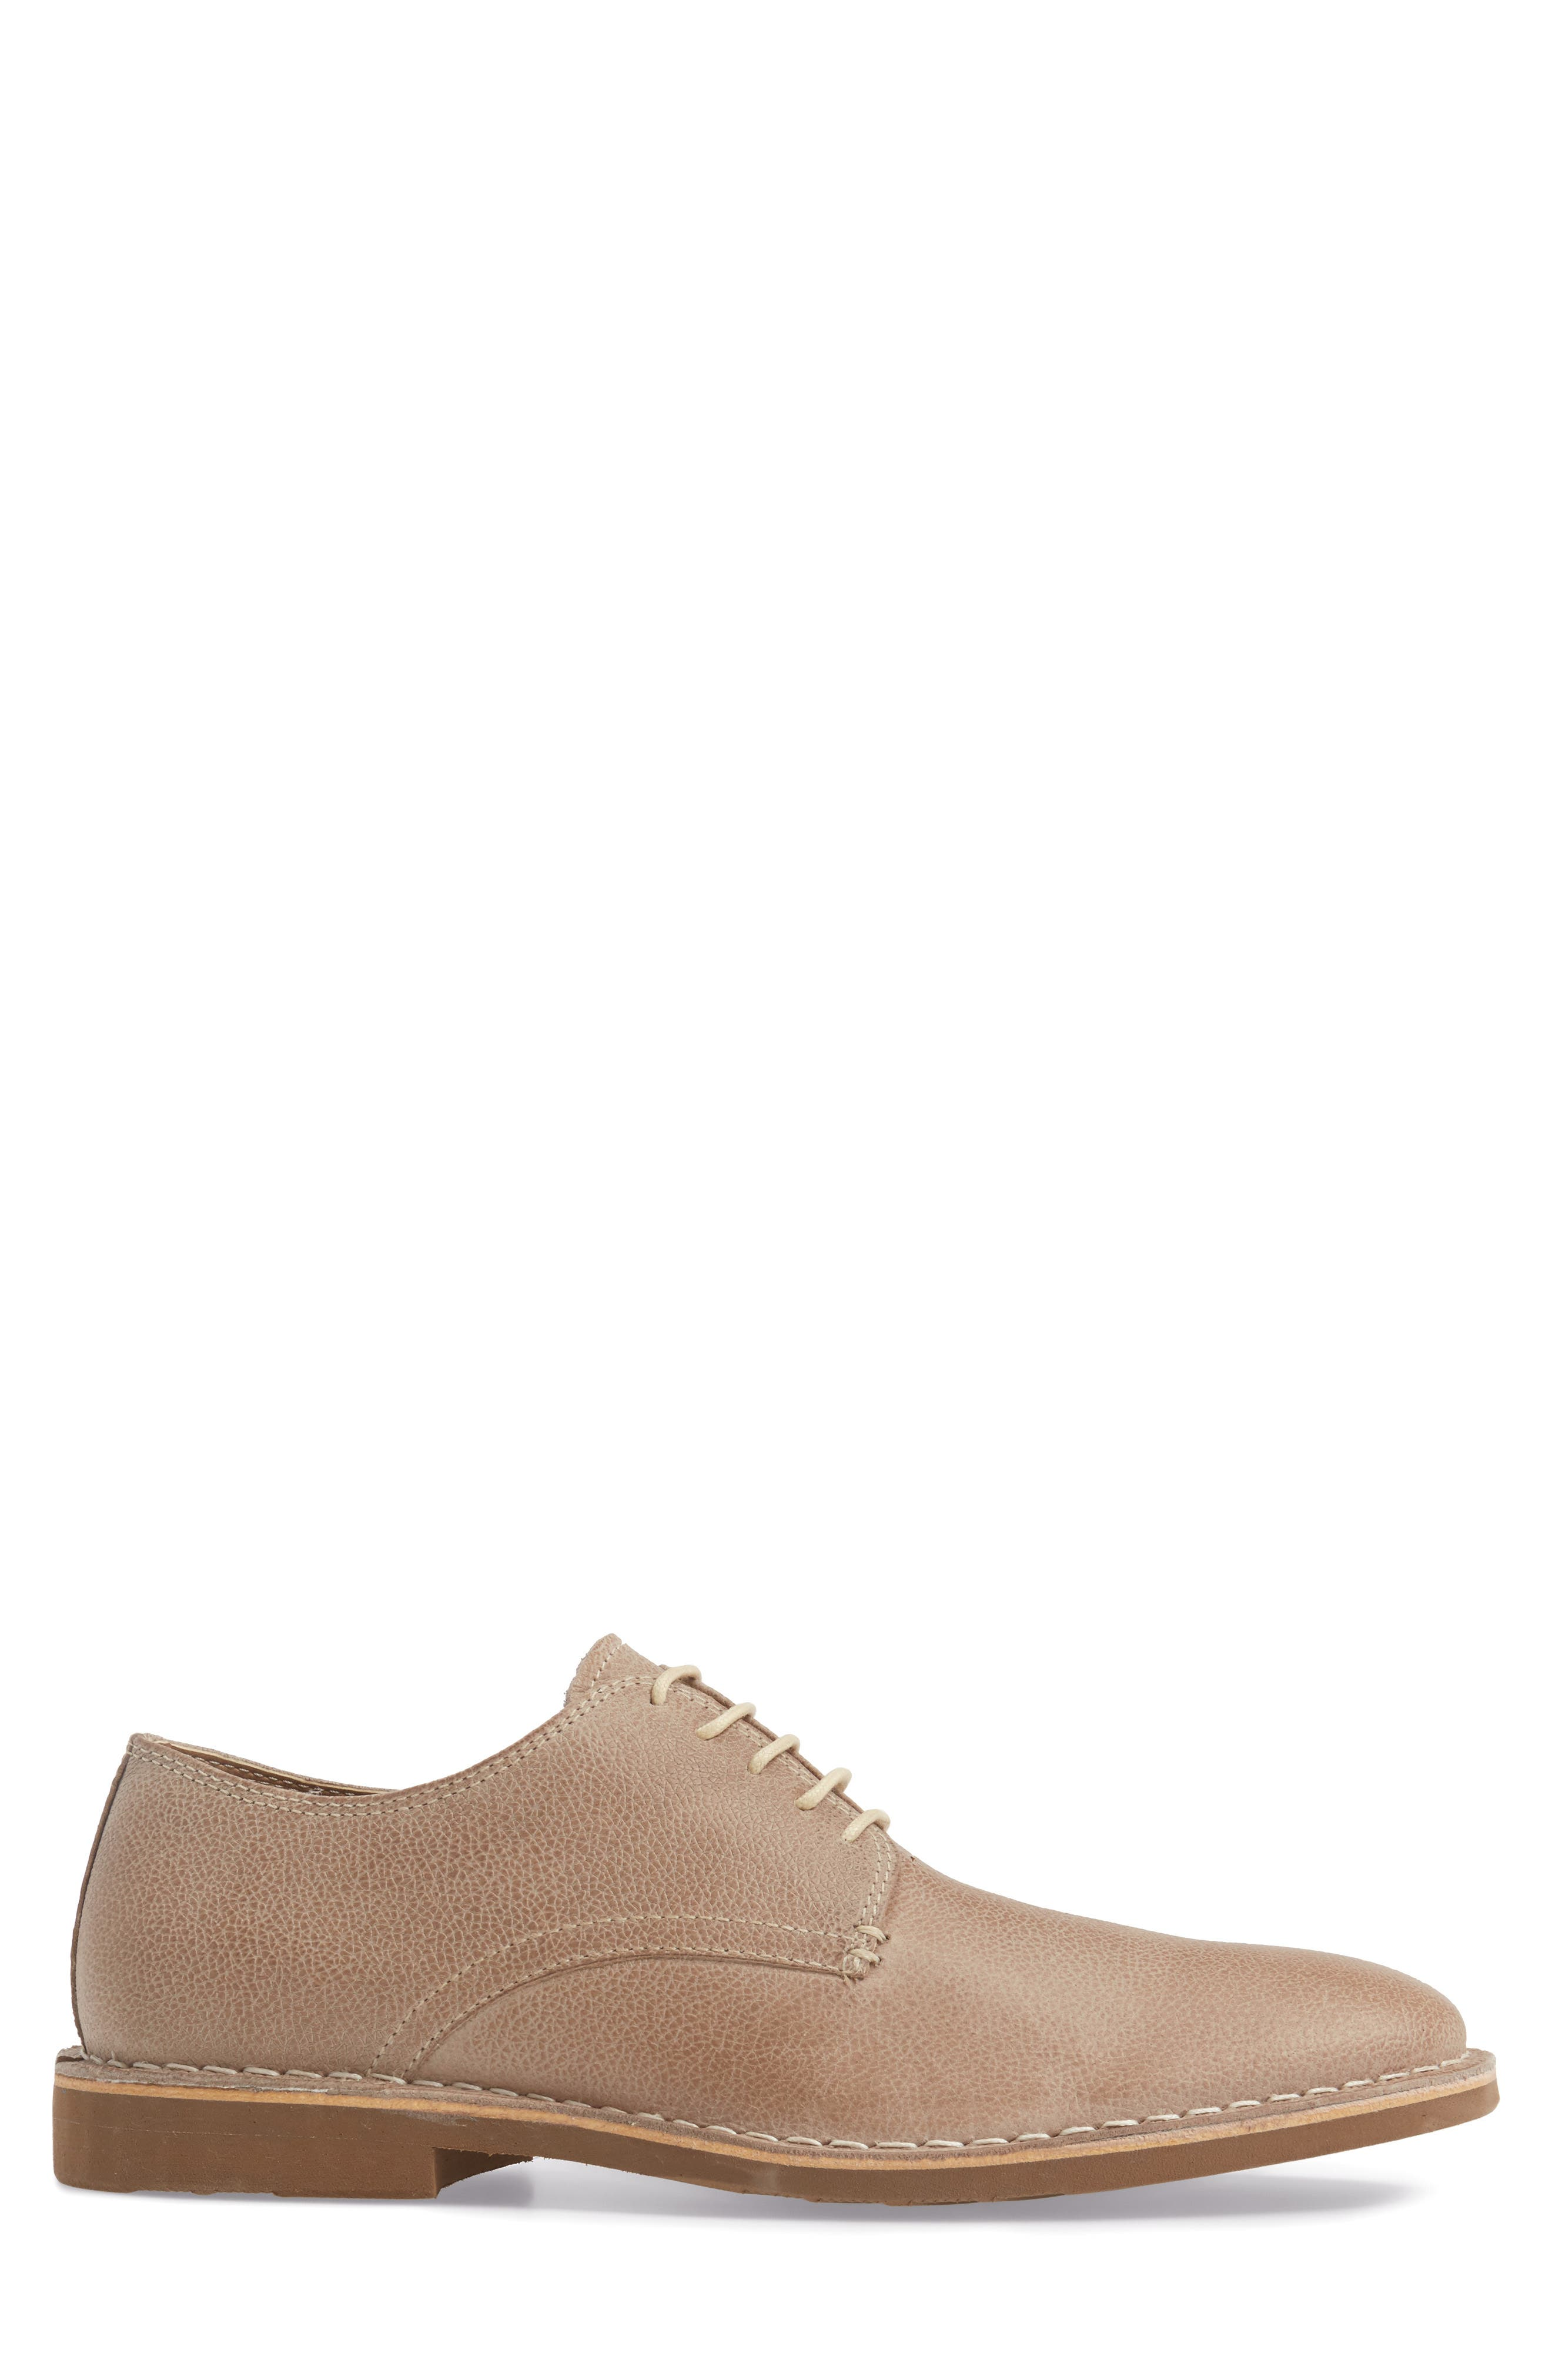 Kenneth Cole New York En-Deer-ing Derby,                             Alternate thumbnail 3, color,                             202